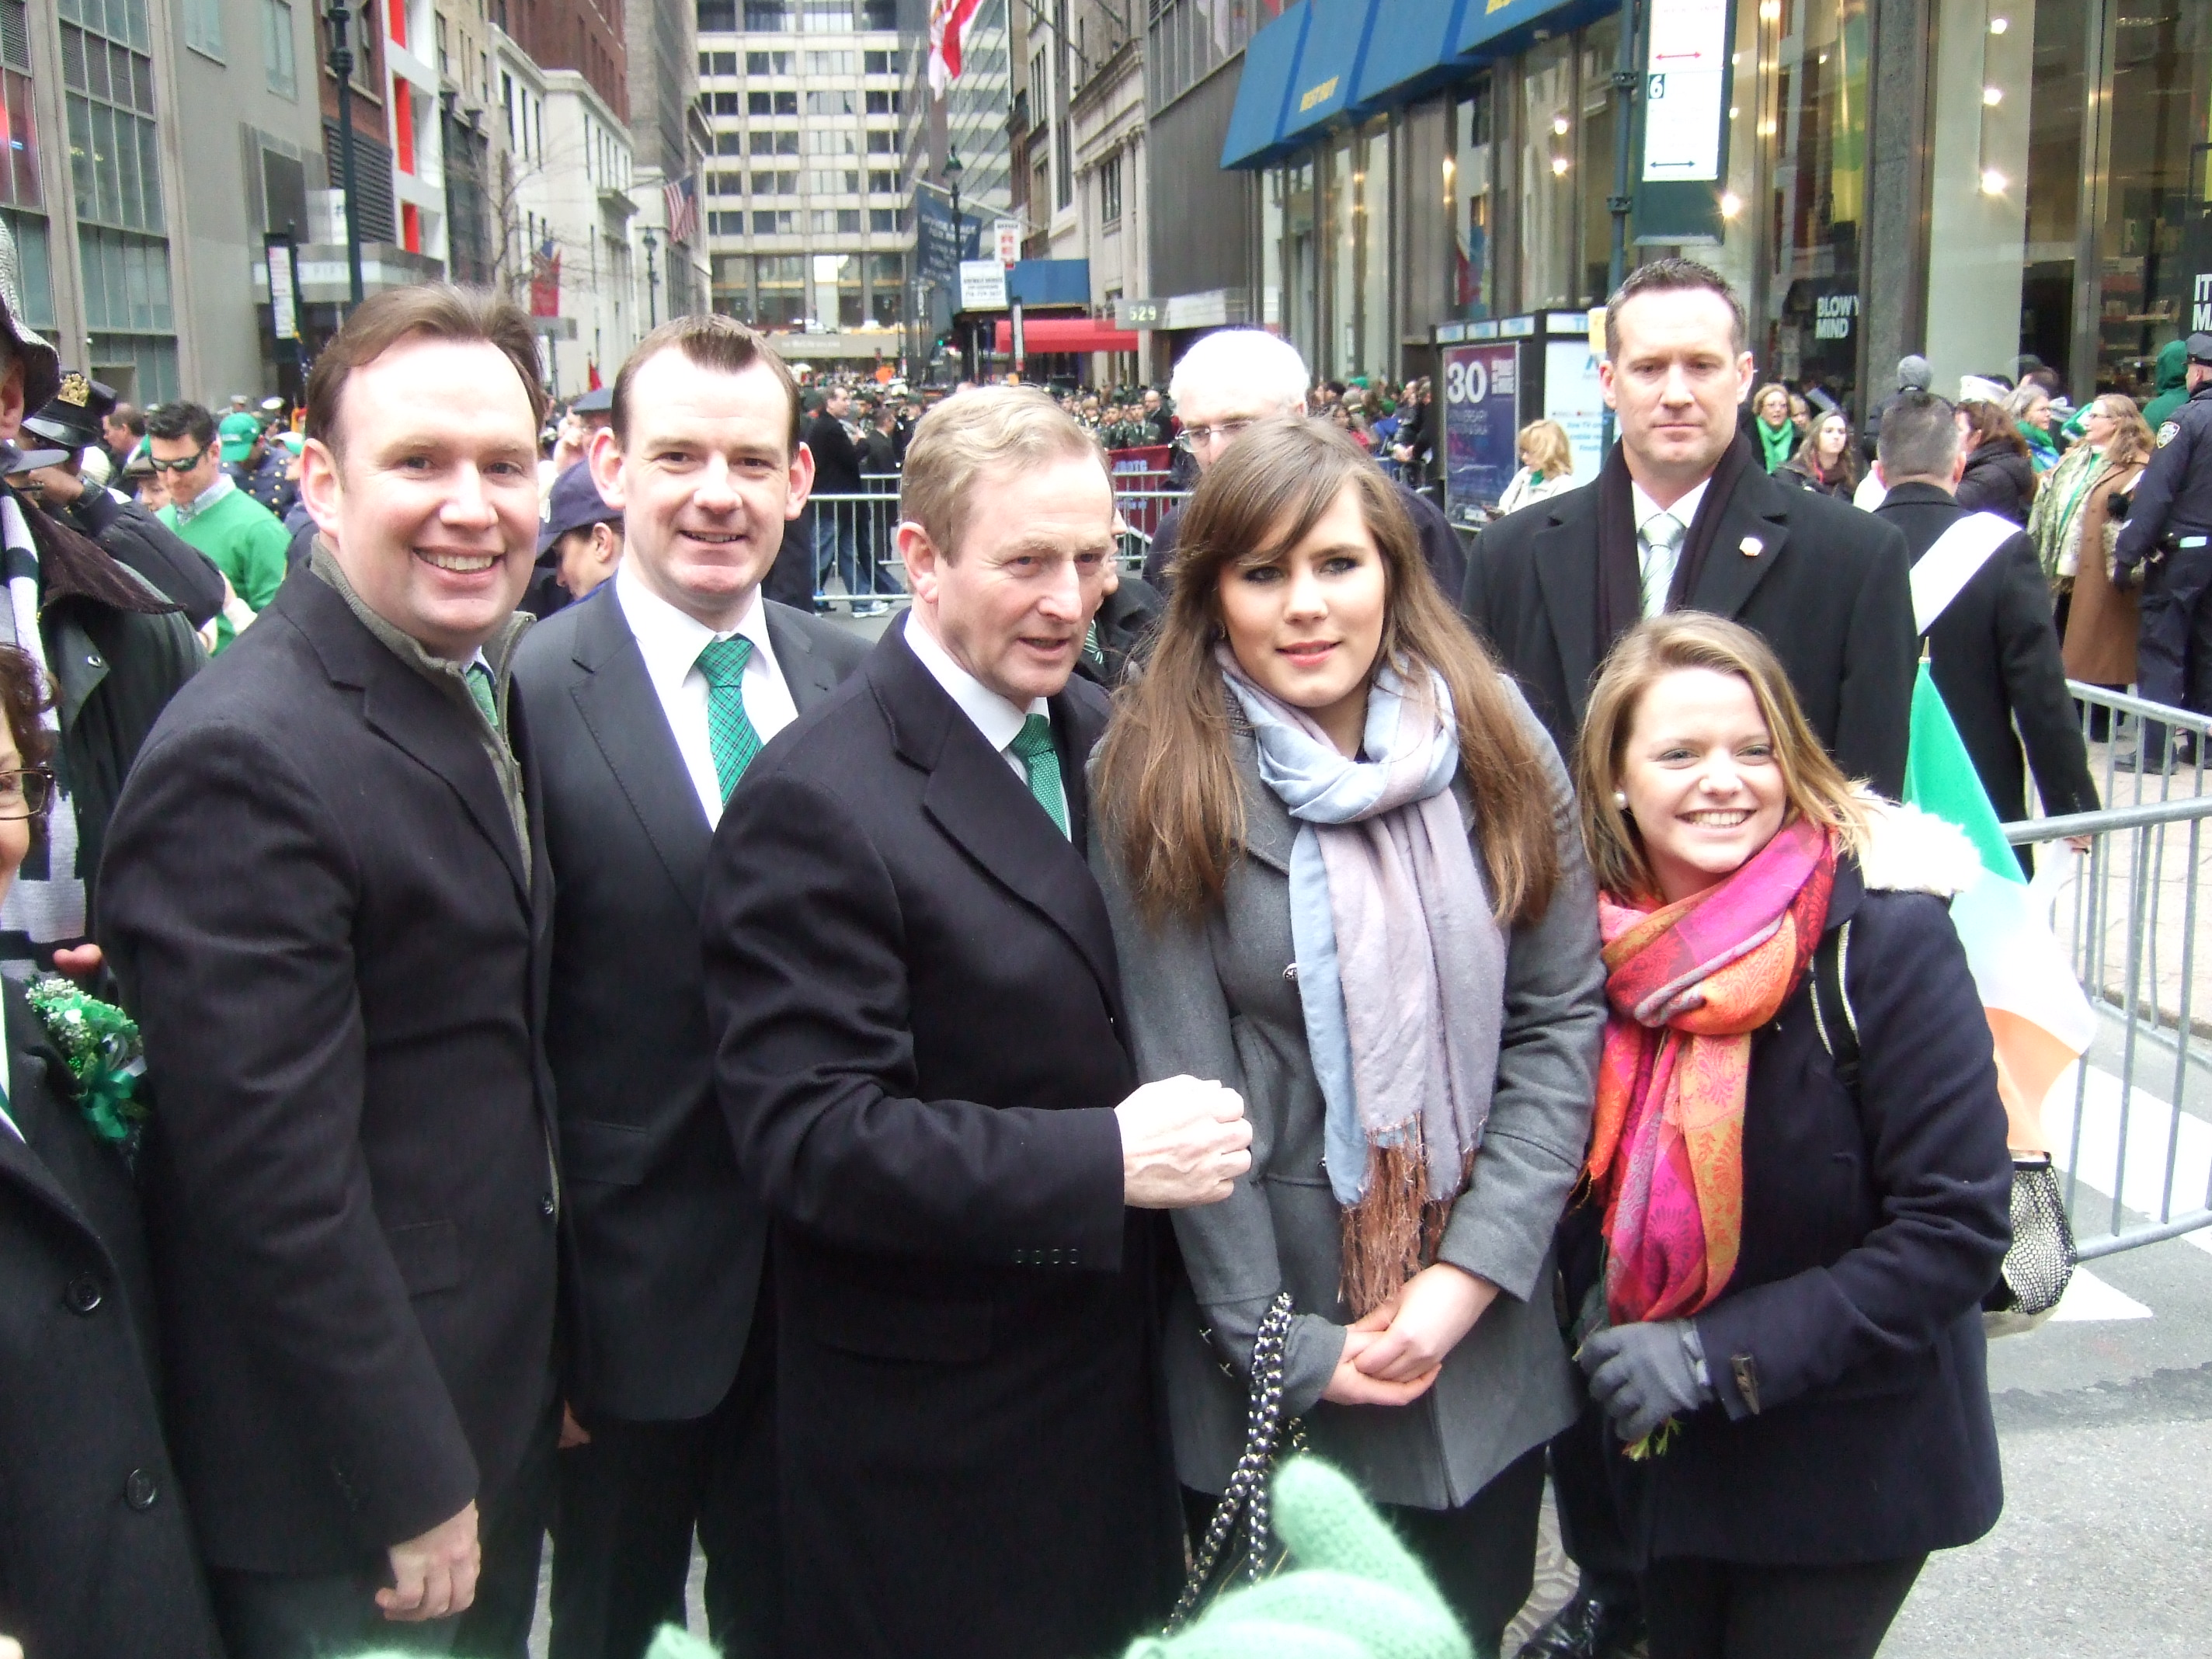 From l to r: Assemblyman Michael Cusick, Pádraig Mac Consaidín (Cobh), Taoiseach Enda Kenny, Aoife Wilson (Clonakilty) and Lisa Keohane (Bantry) pictured at the St. Patrick's Day Parade in New York City, March 2013.